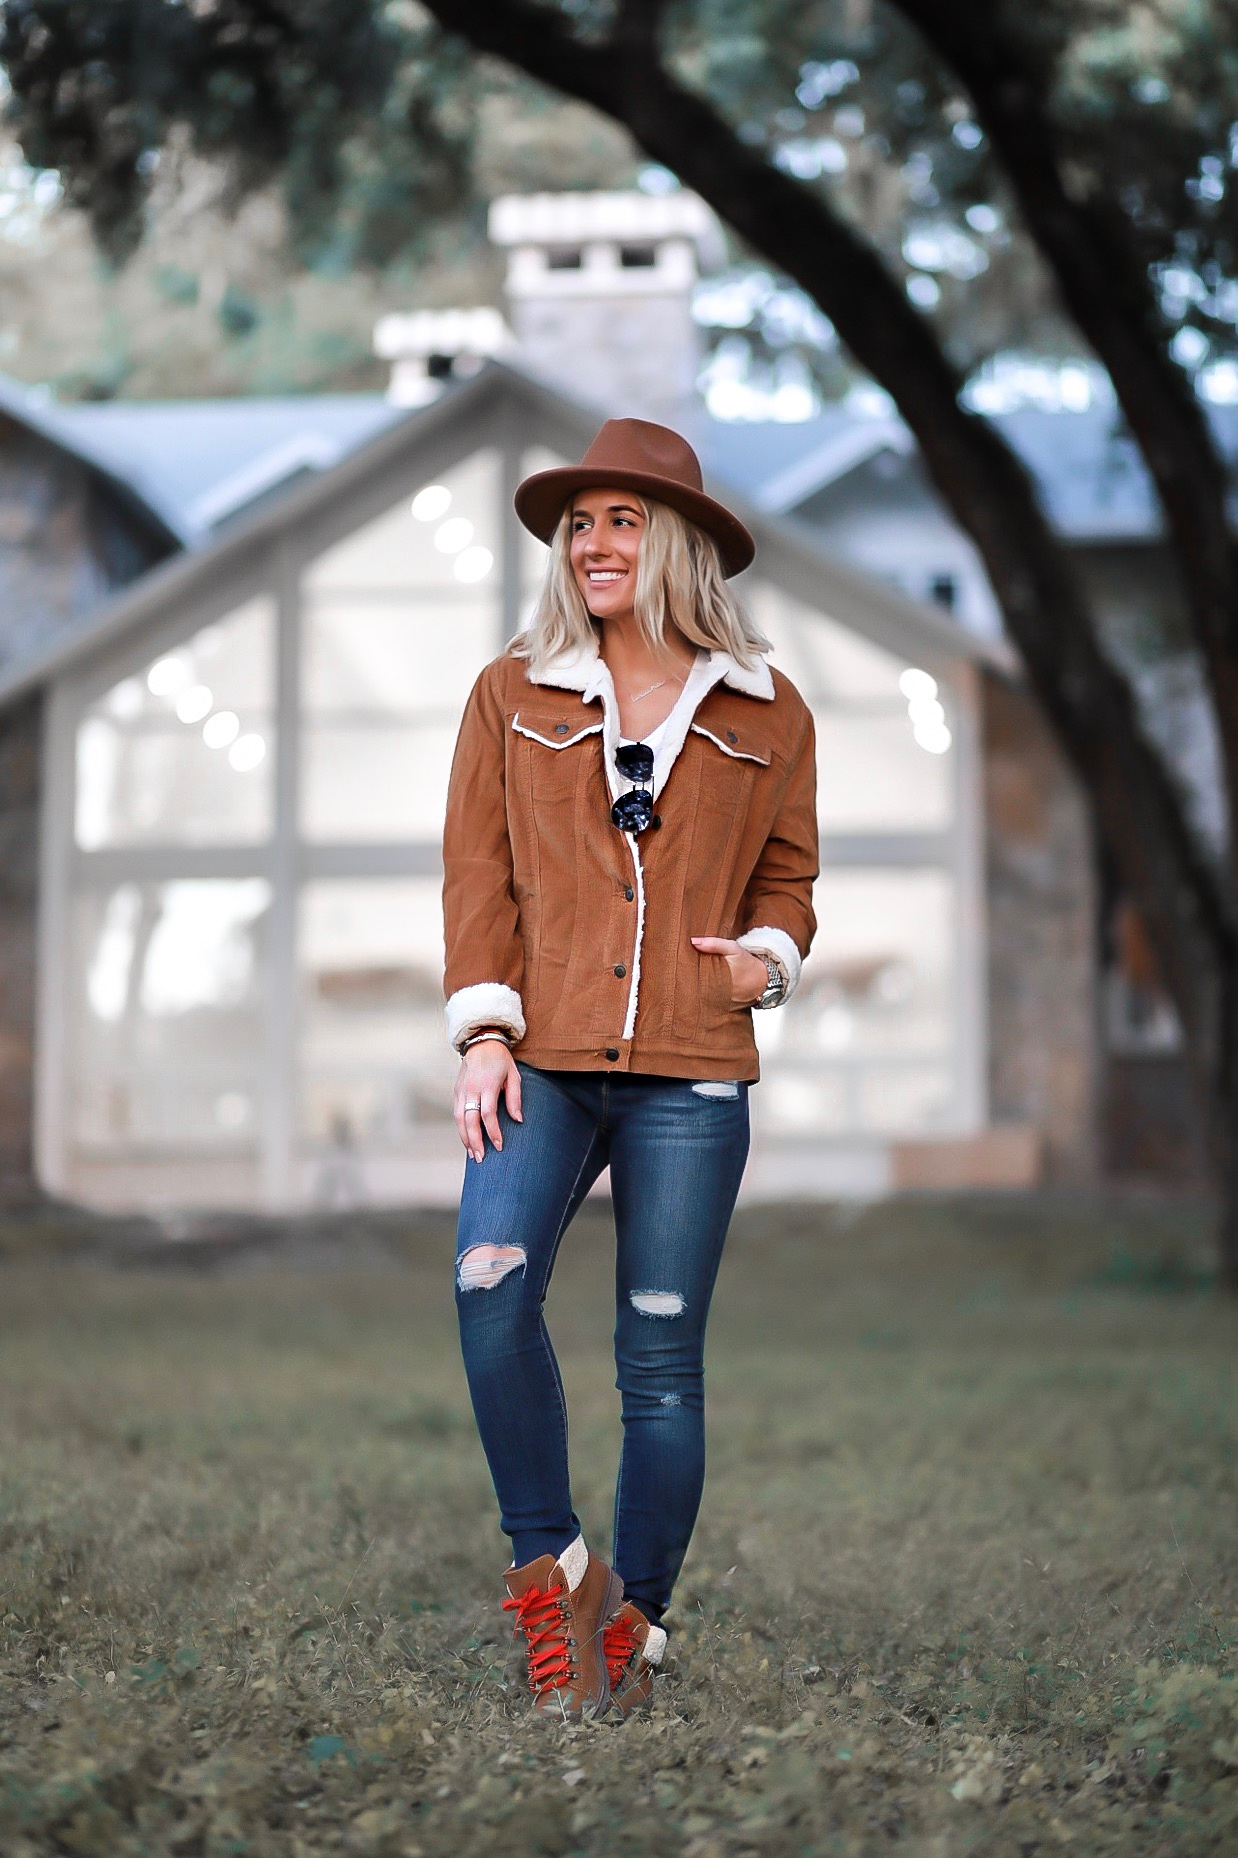 COZY FALL WINTER OUTFIT UNDER $50 LAURA BEVERLIN SHEARLING JACKET BOOTS